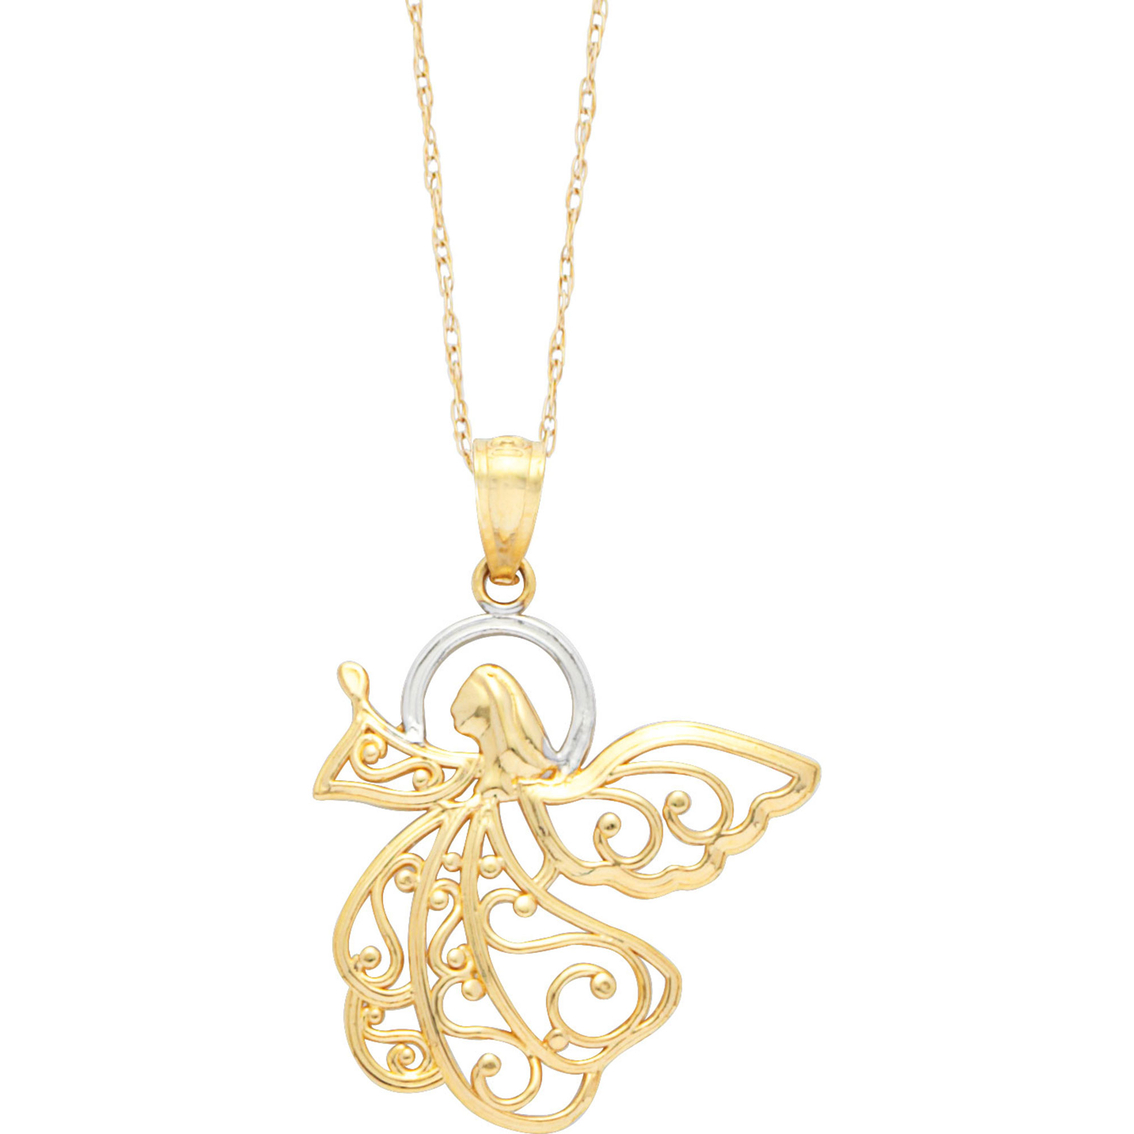 necklaces chain and necklace gold two tone image from pendants